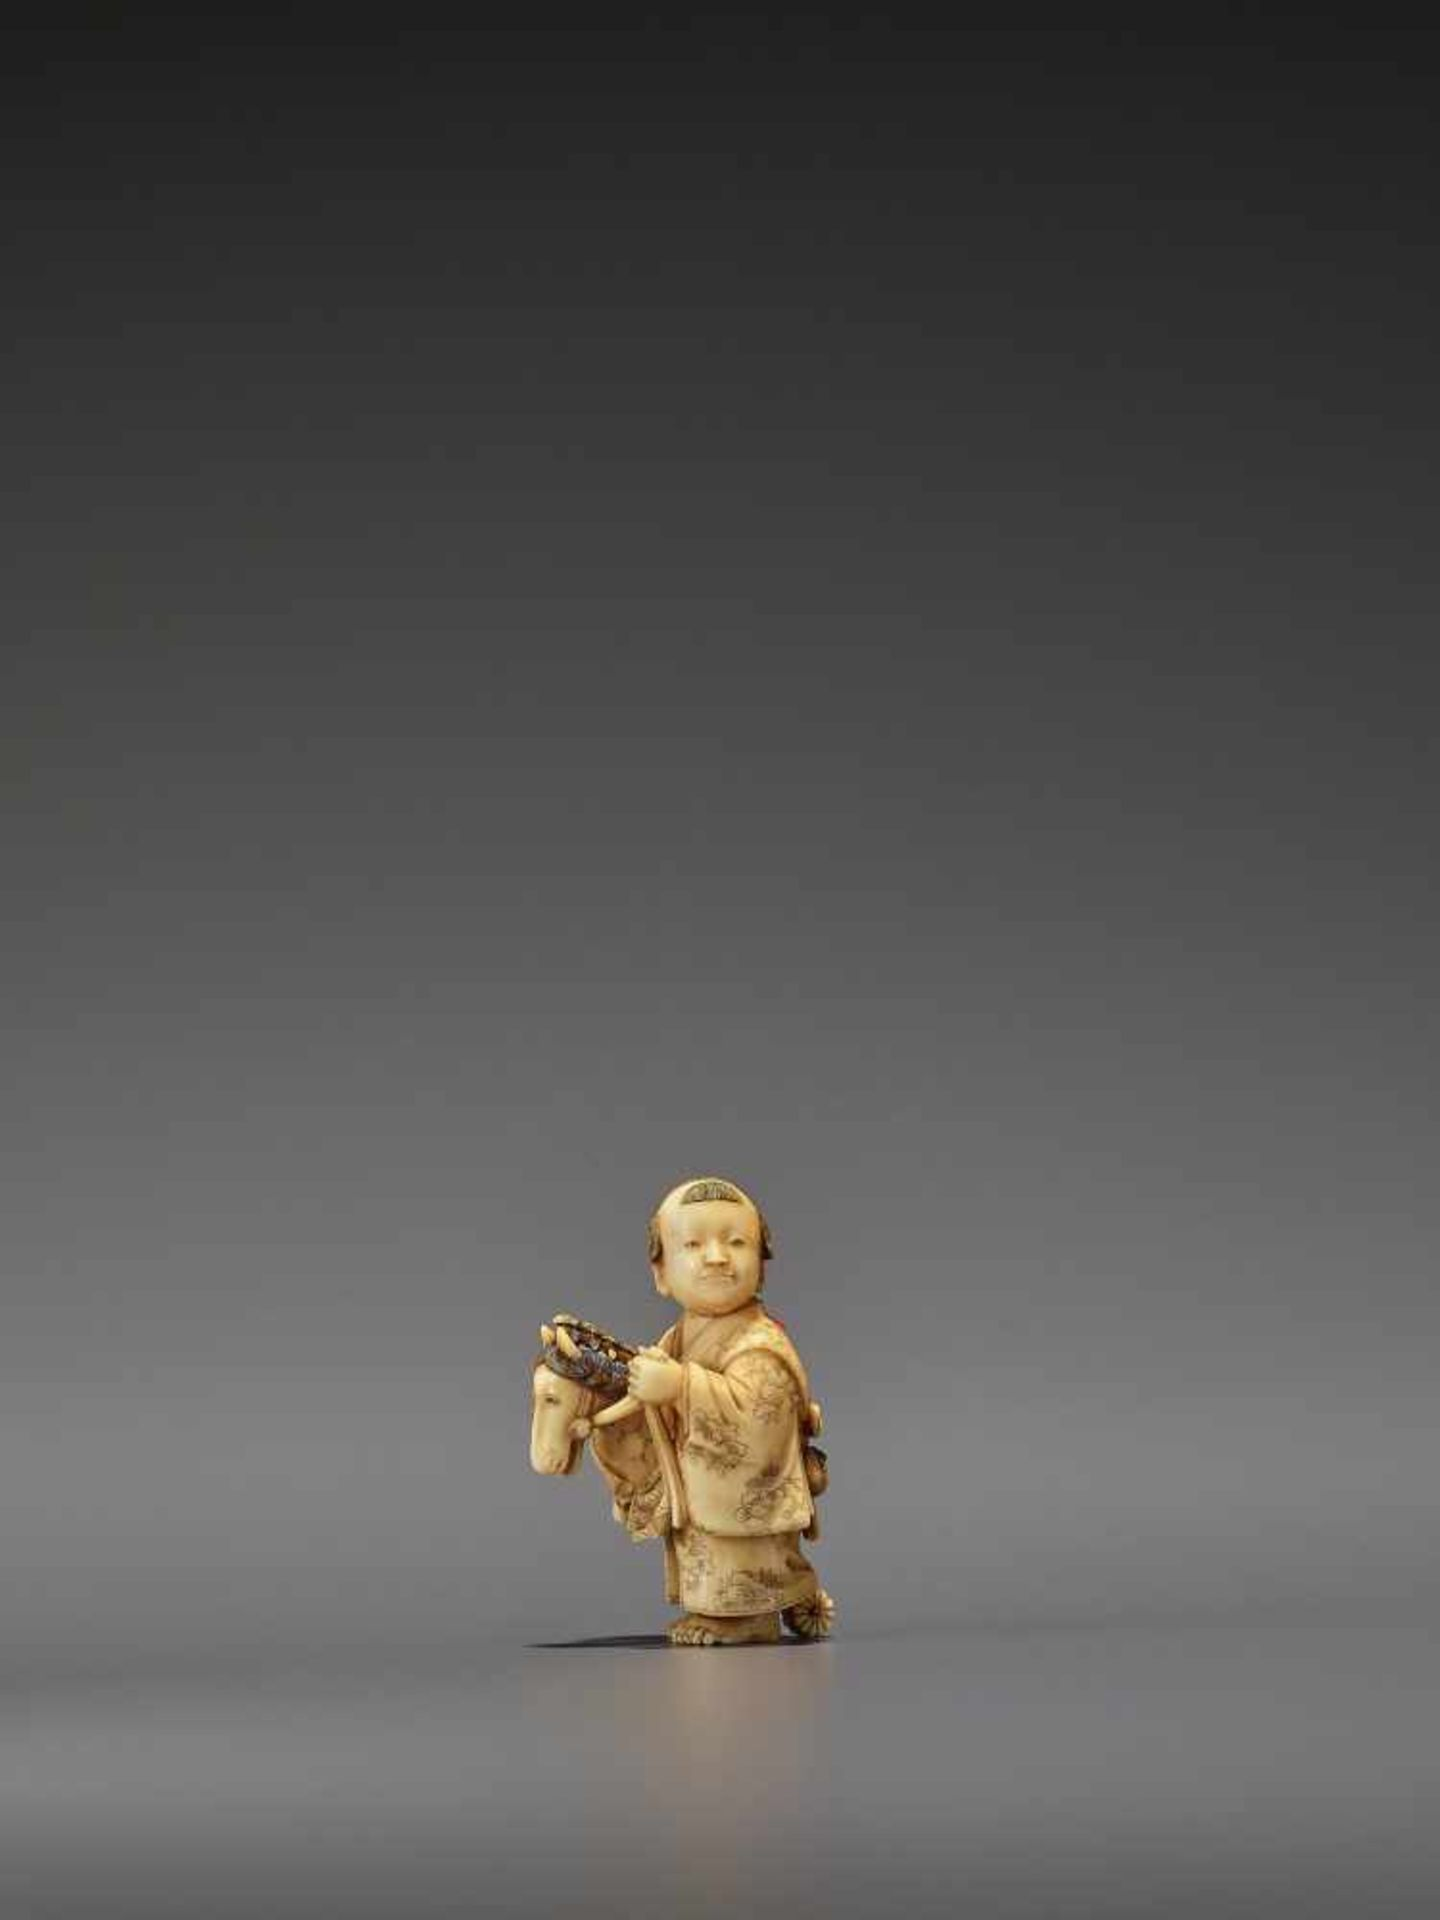 RYOMIN: A VERY FINE IVORY NETSUKE OF A BOY WITH HOBBY HORSE By Ono Ryomin, signed Ryomin with - Image 3 of 11